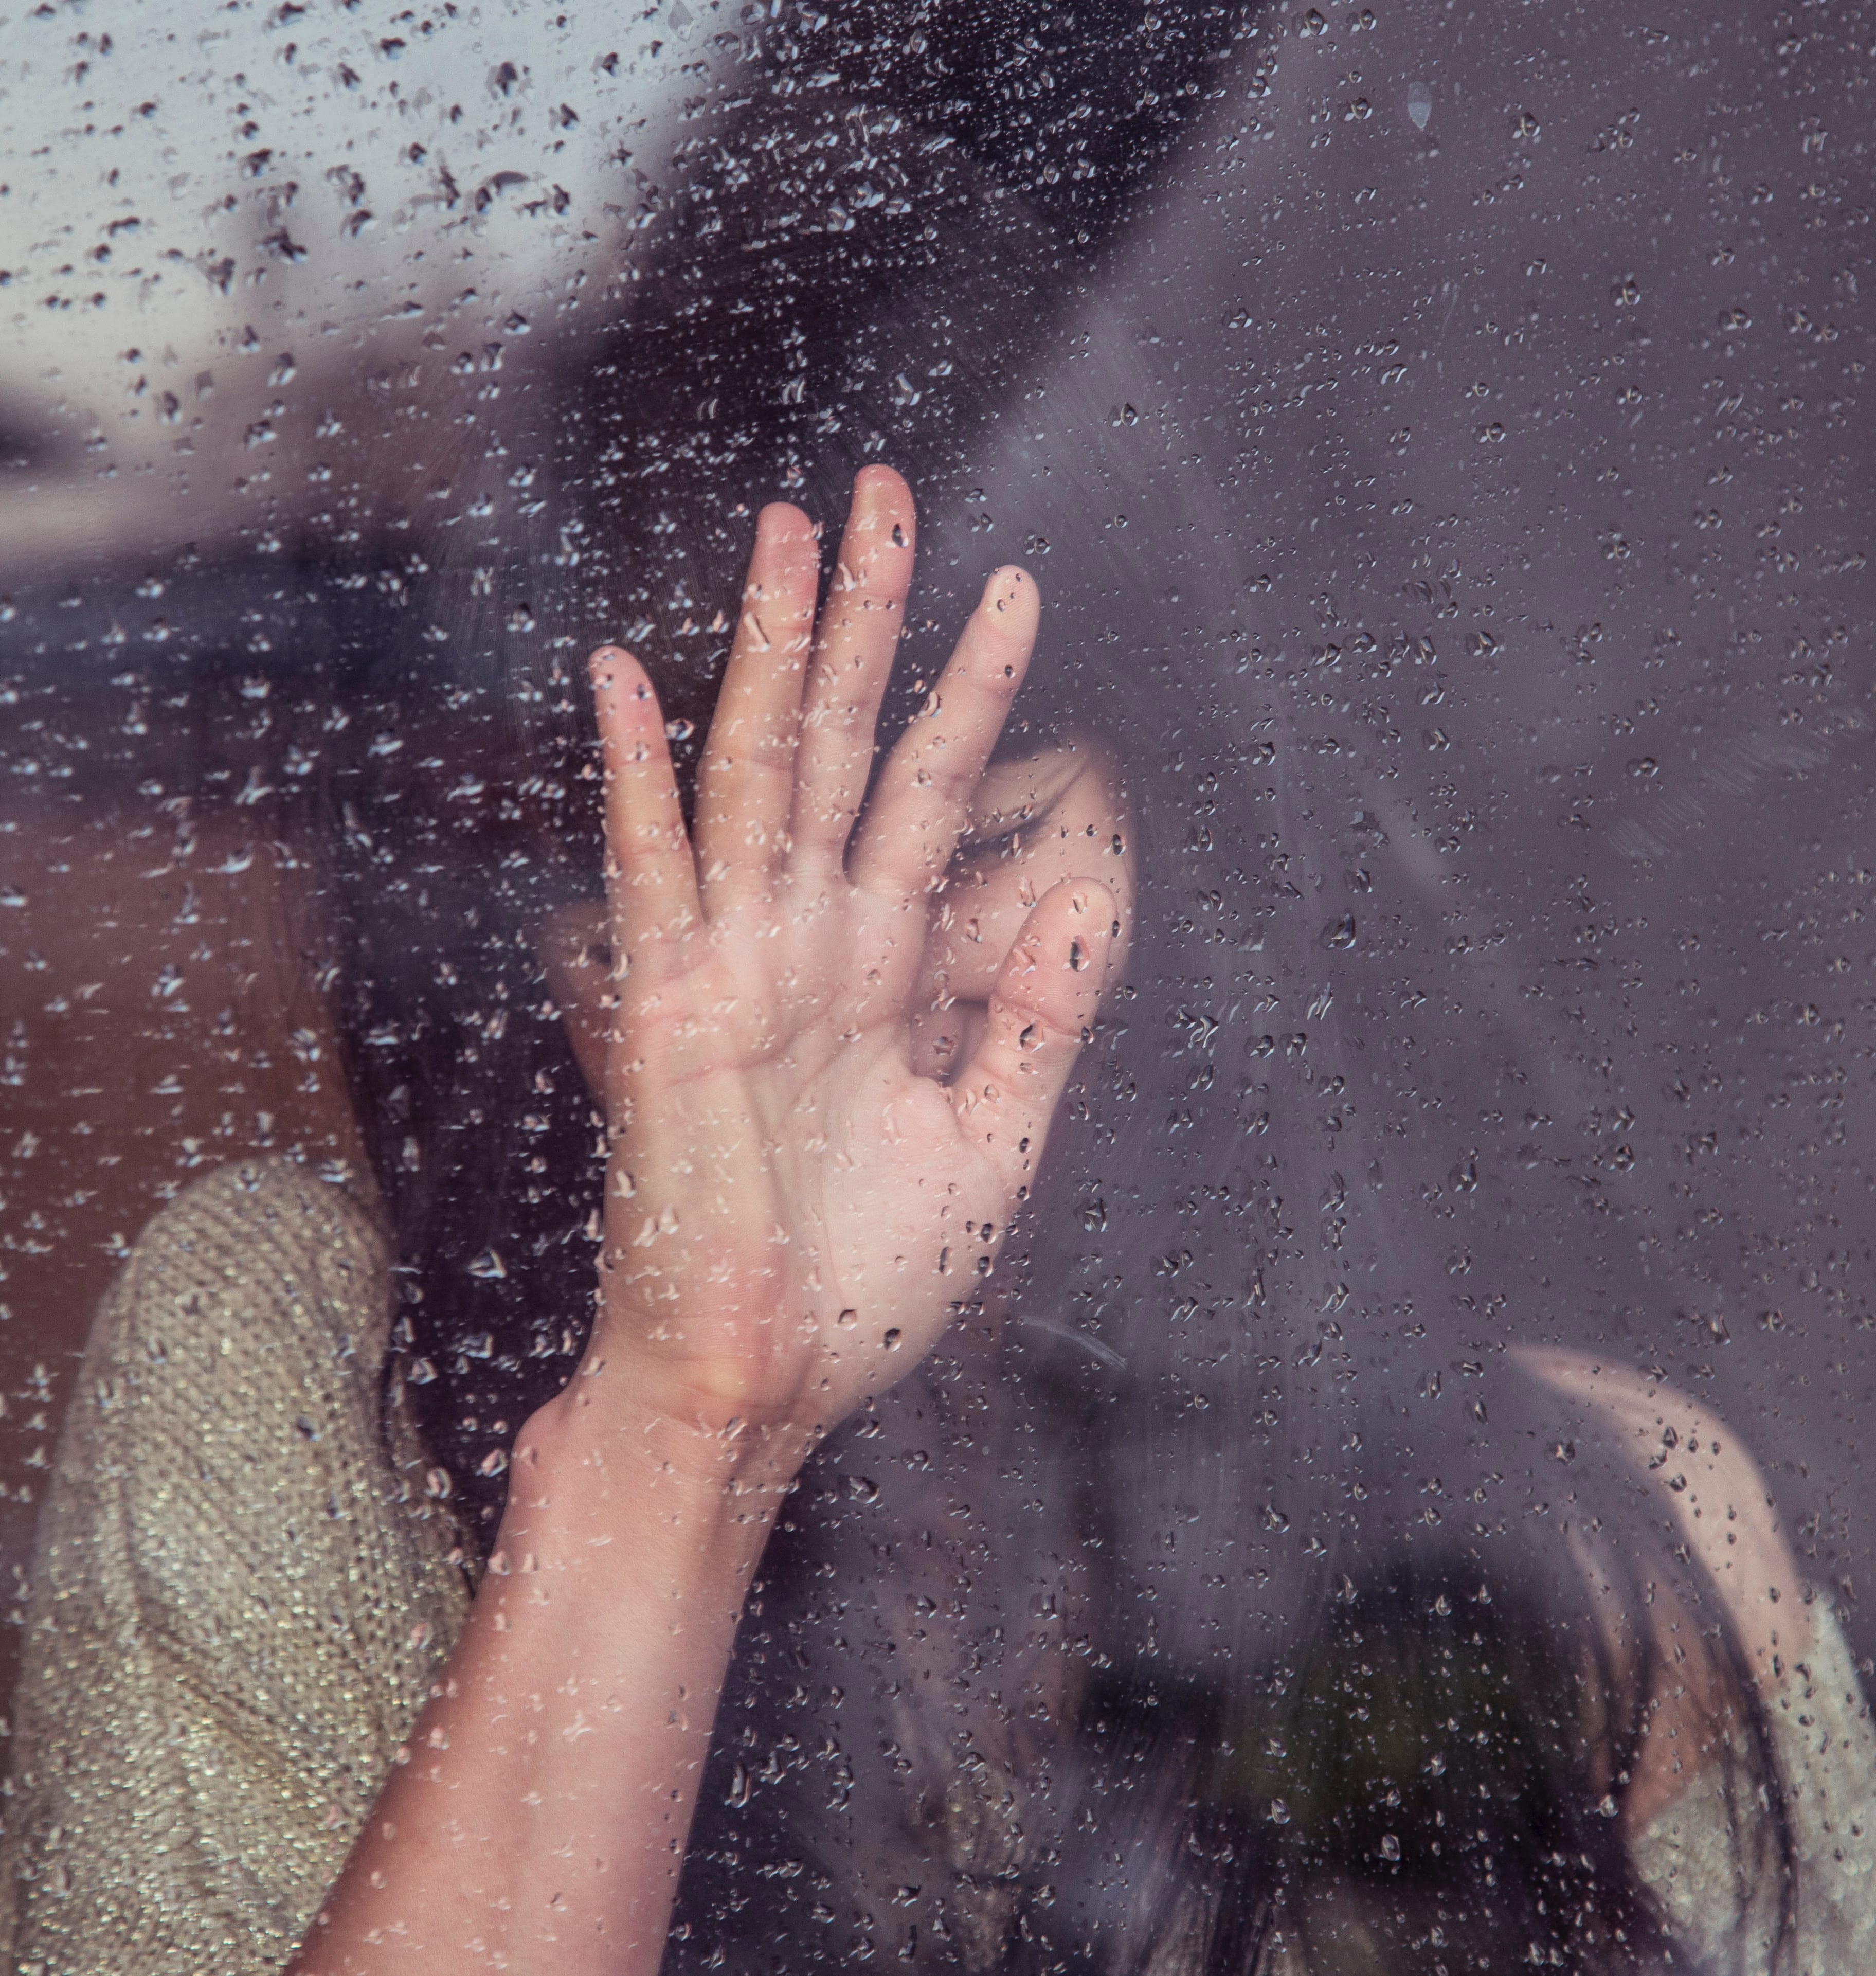 Woman touching raindrop covered window pane; image by Milada Vigerova, via Unsplash.com.